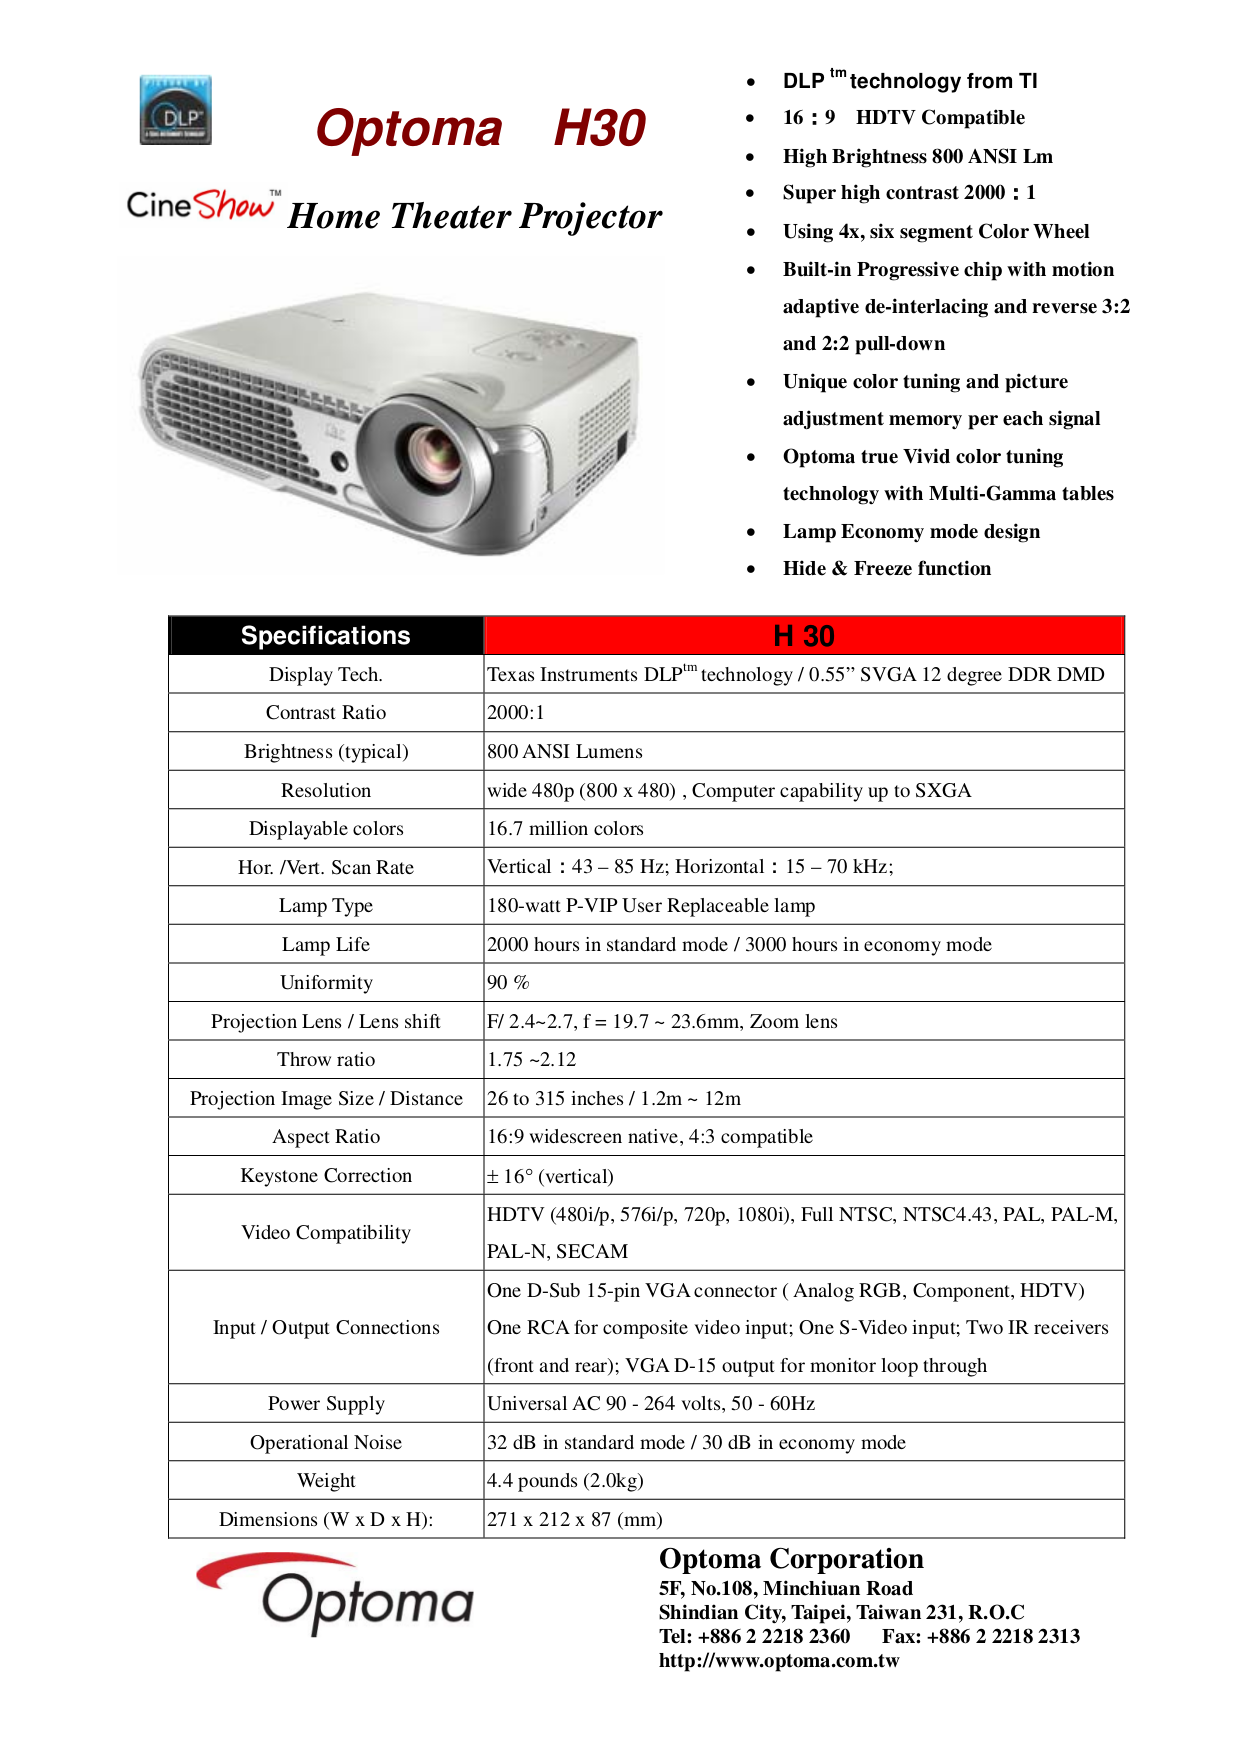 pdf for Optoma Projector H30 manual